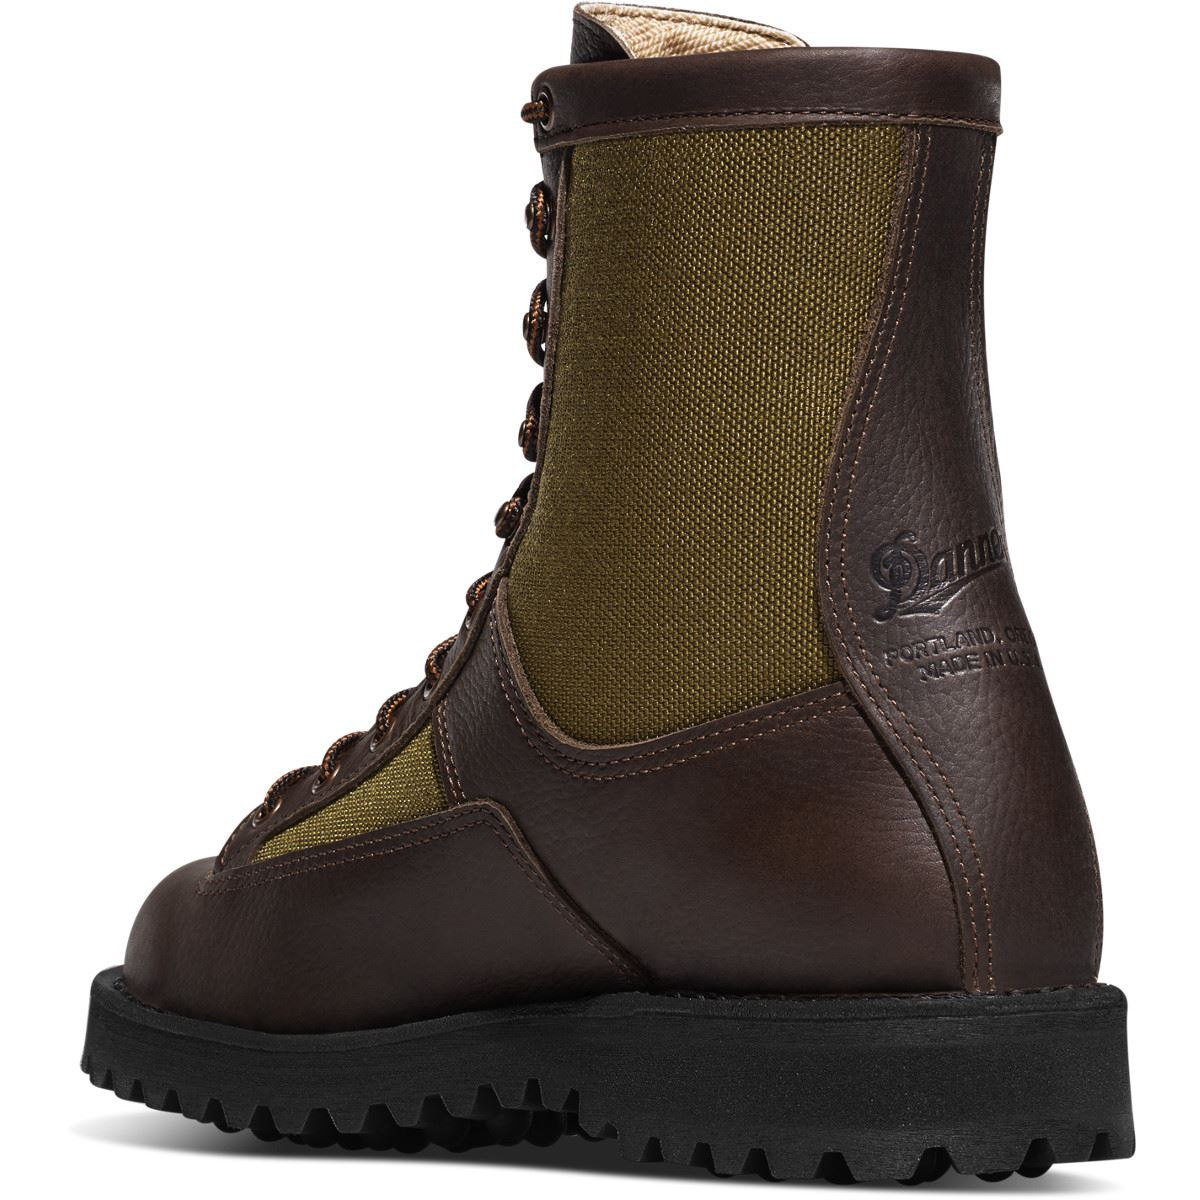 YUTUTU Men rain snow boot double velet warm winter short snow boot Outdoor Korean Style Cold-Weather Boots Whistle stores that sell danner boots Workwear is here to serve the American Worker by providing the quality workwear they need under one roof with great customer service, top brands, and a wide selection of products, all at competitive prices.